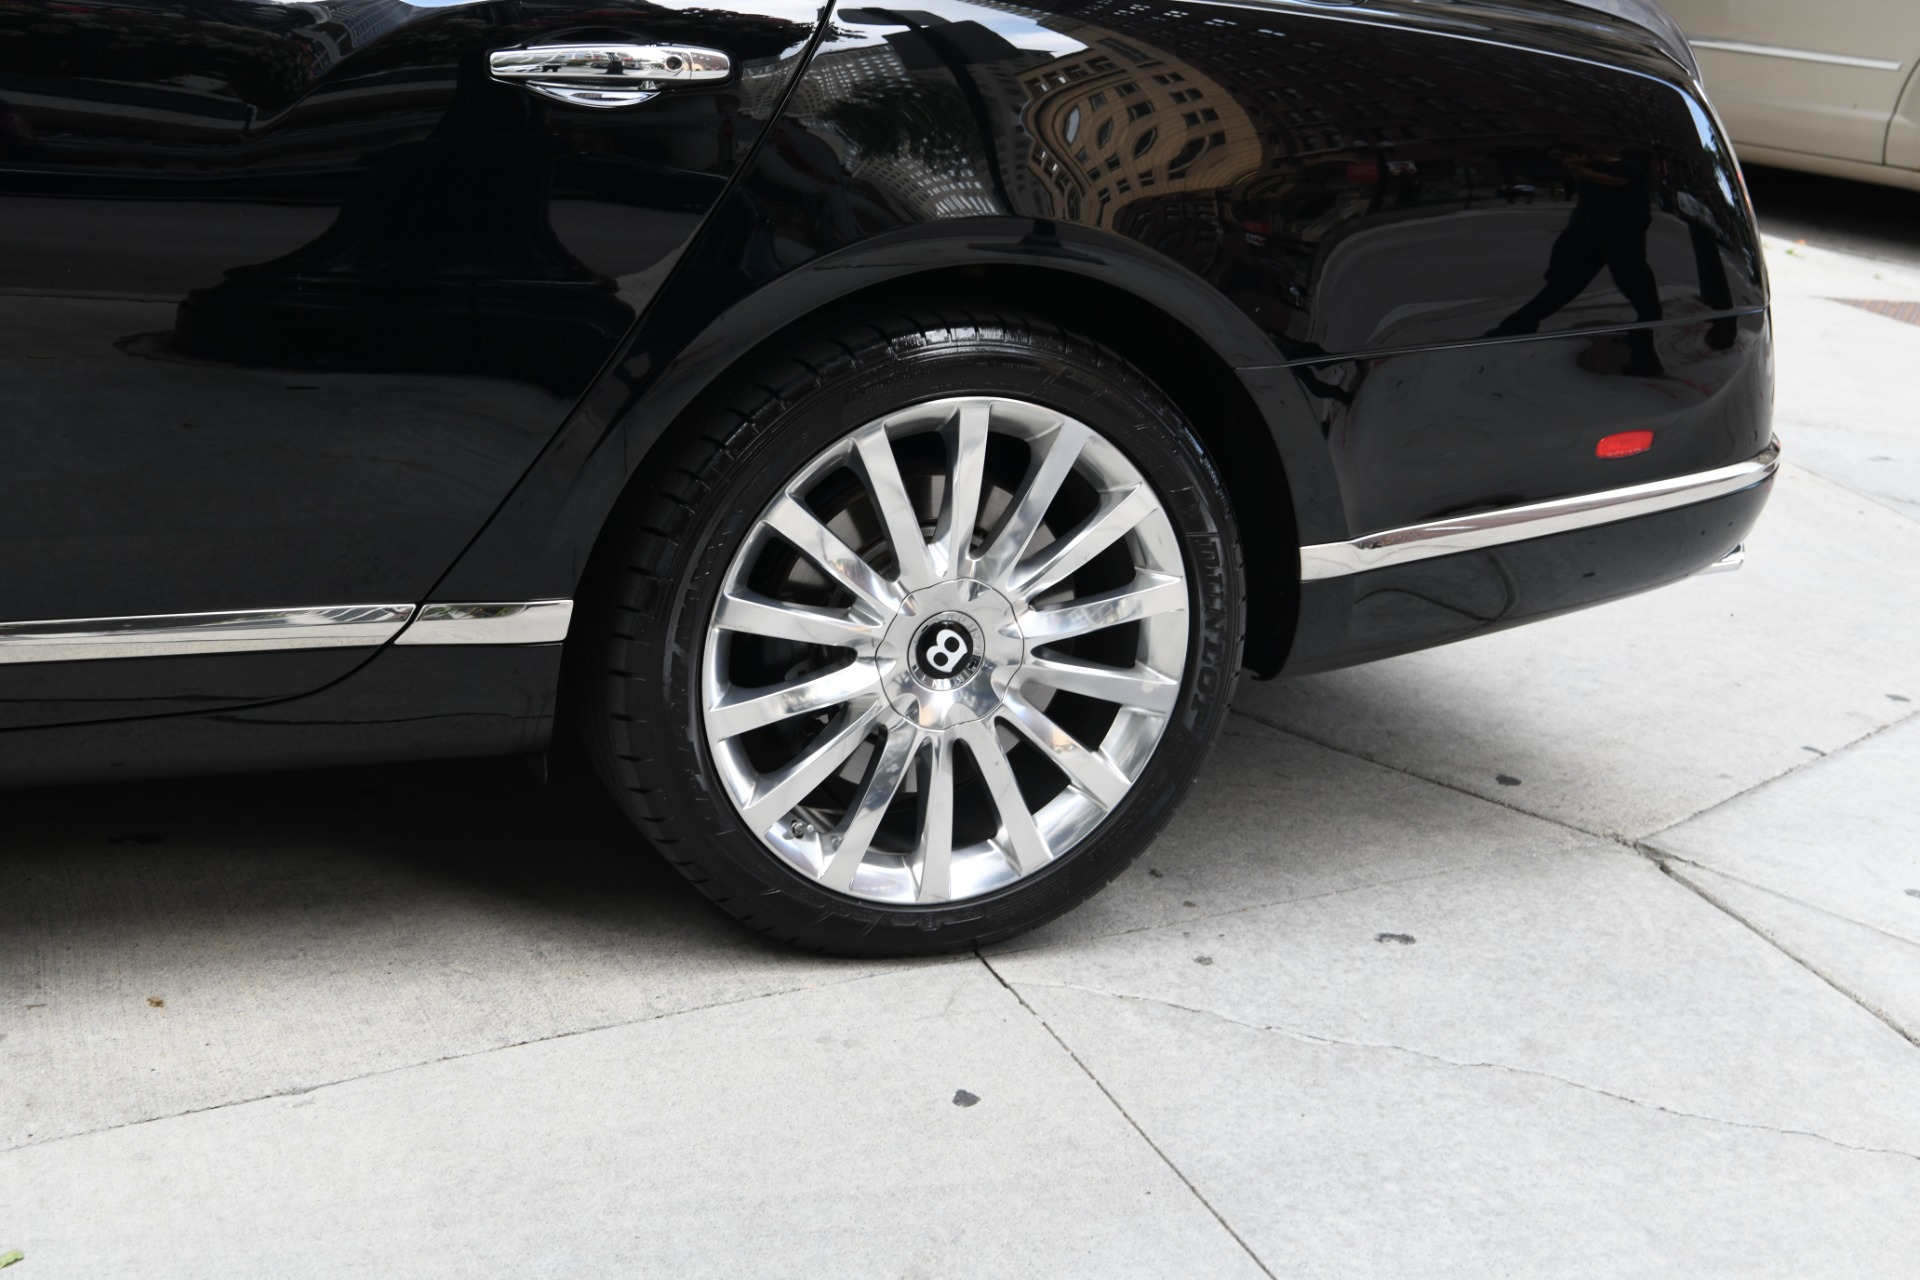 Used 2017 Bentley Mulsanne Extended Wheelbase Extended Wheelbase | Chicago, IL